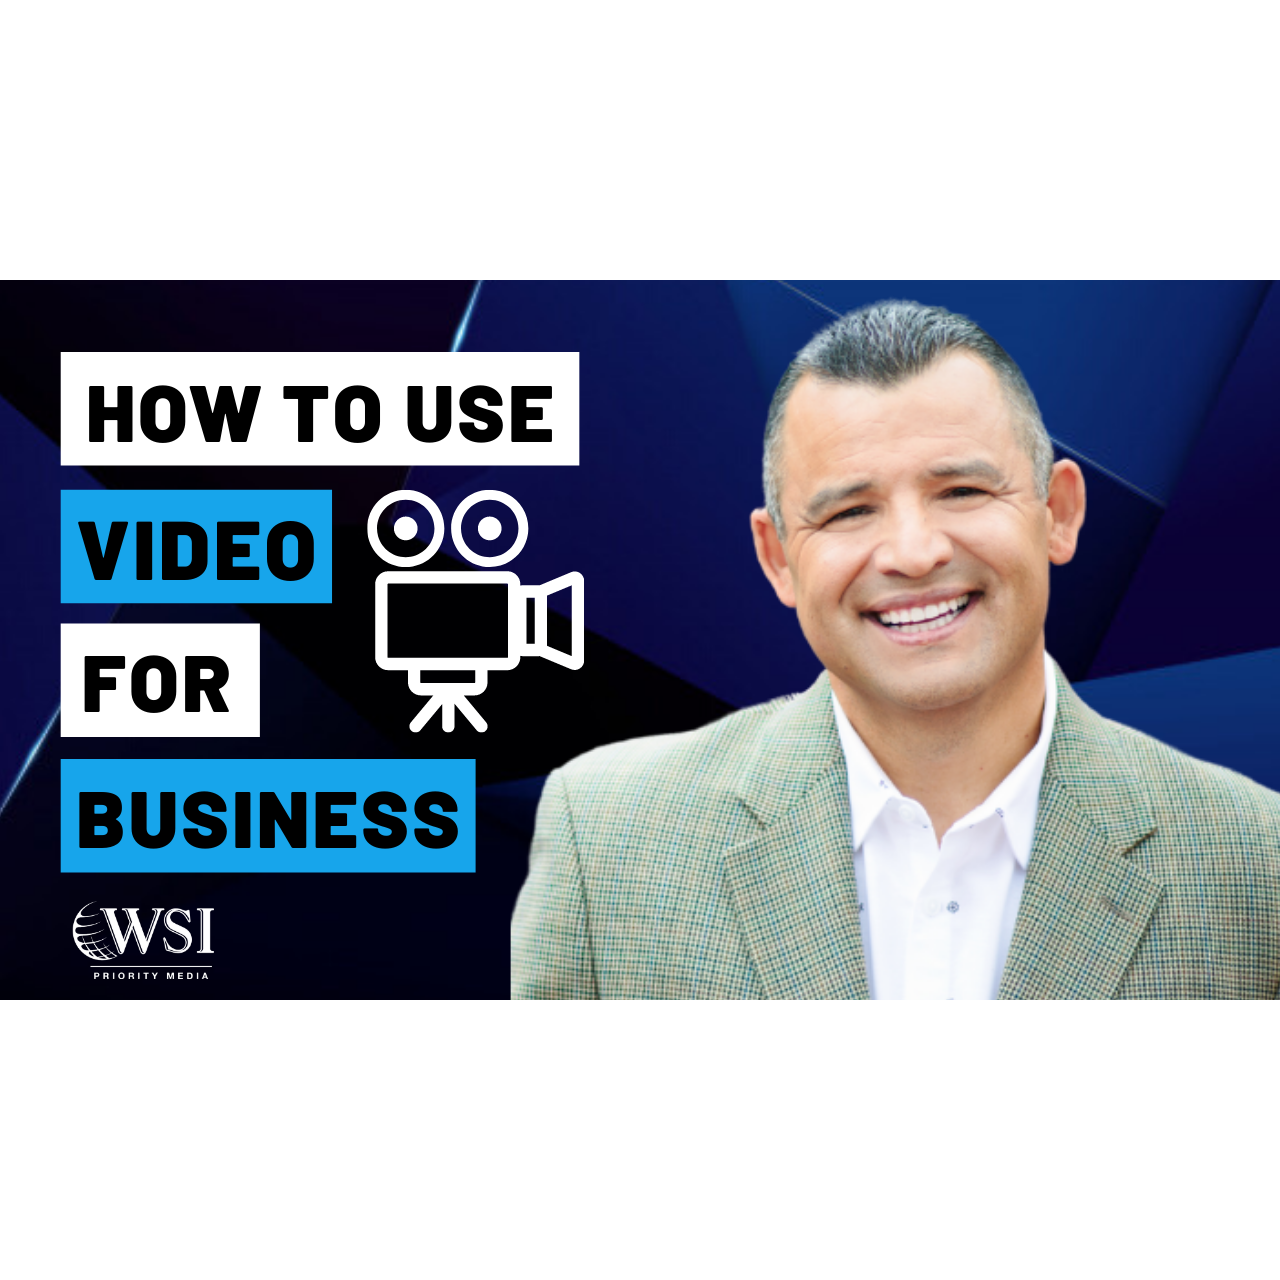 How to Use Video for Business